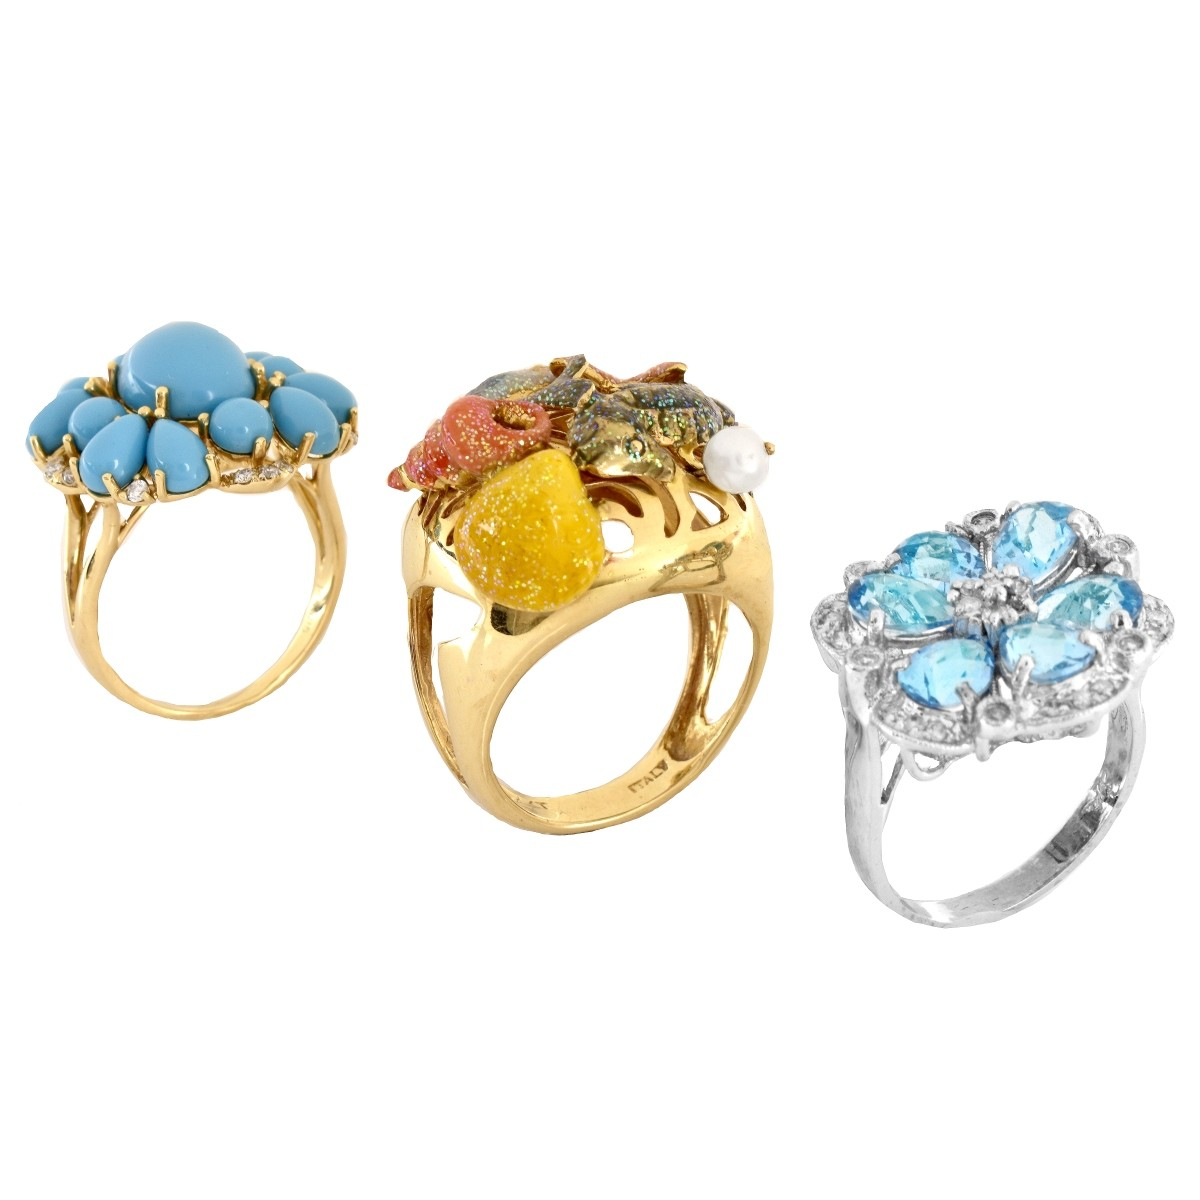 Three 14K Gold Fashion Rings